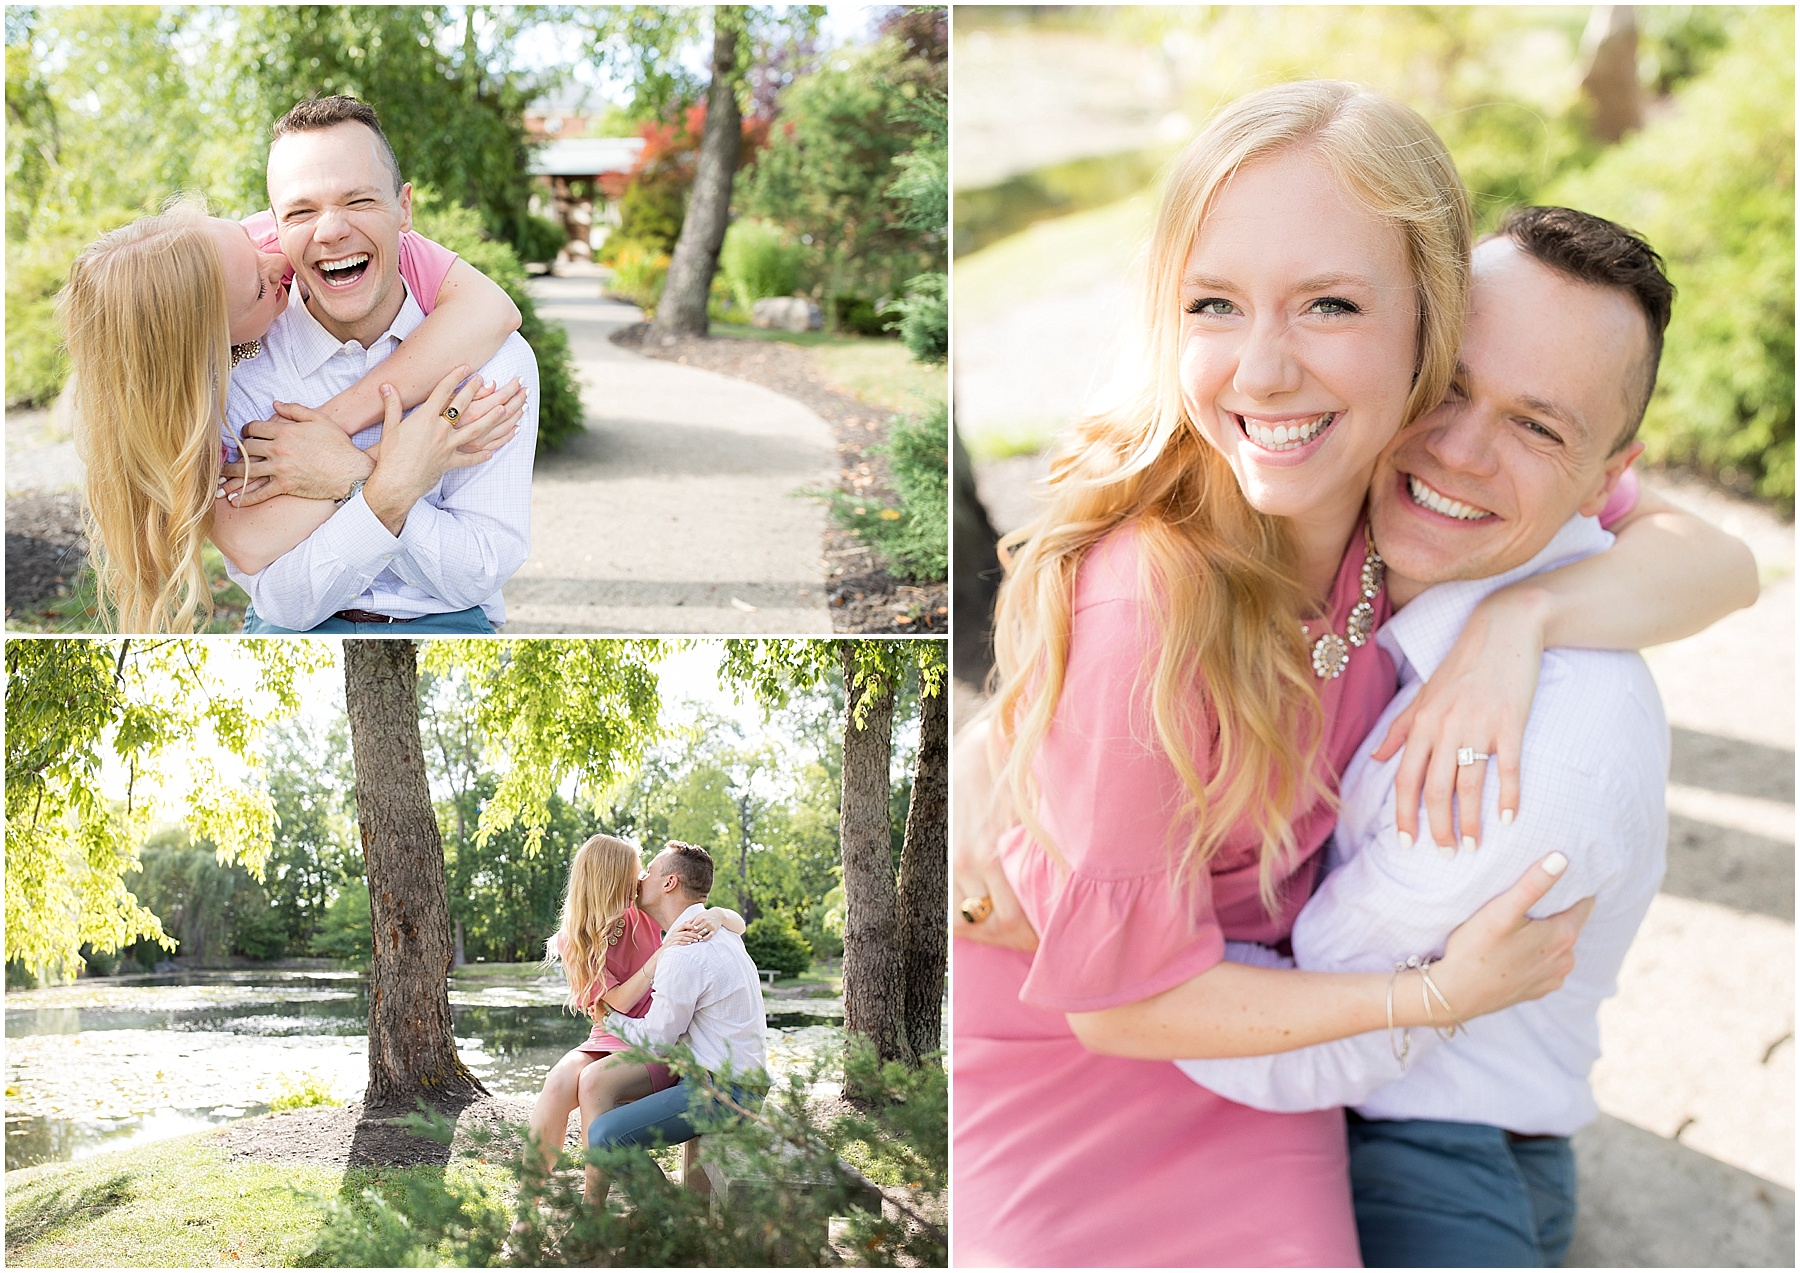 There love for each other shines through there joy and laughter. Indianapolis Engagement Photographer, Raindancer Studios